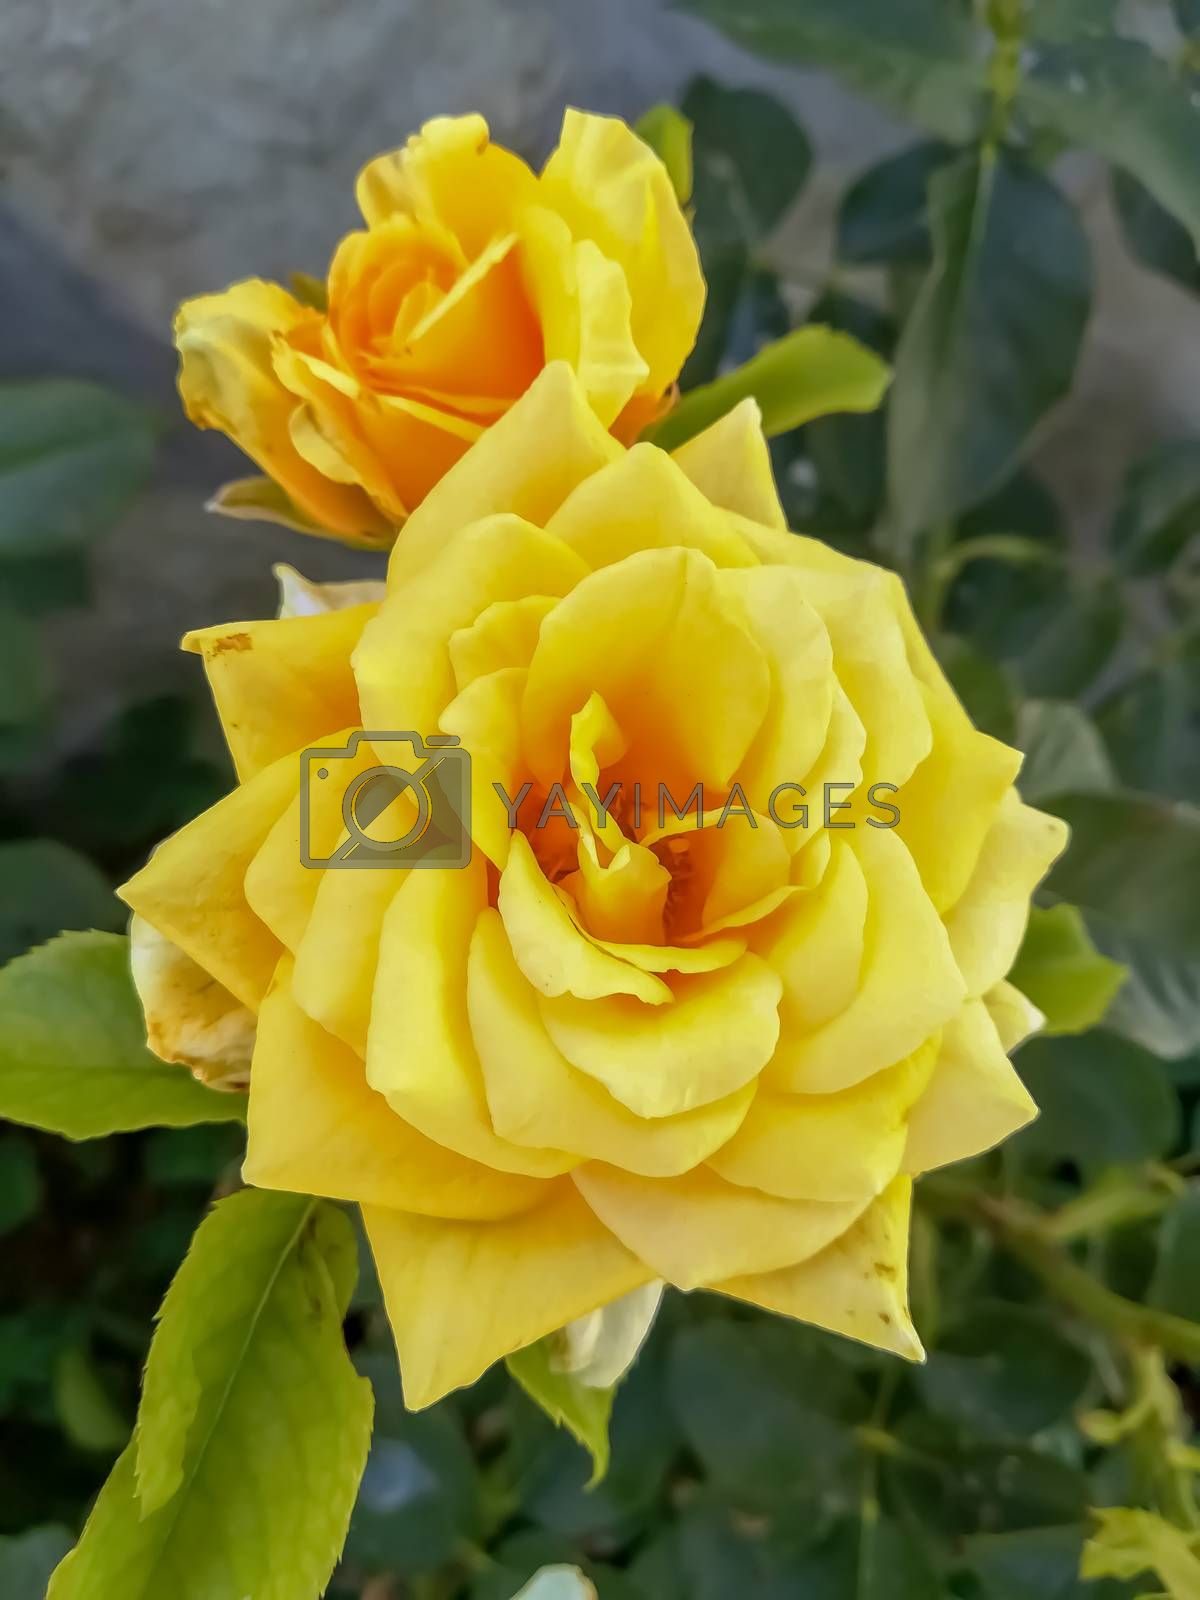 Two yellow roses with unfocused background by Barriolo82